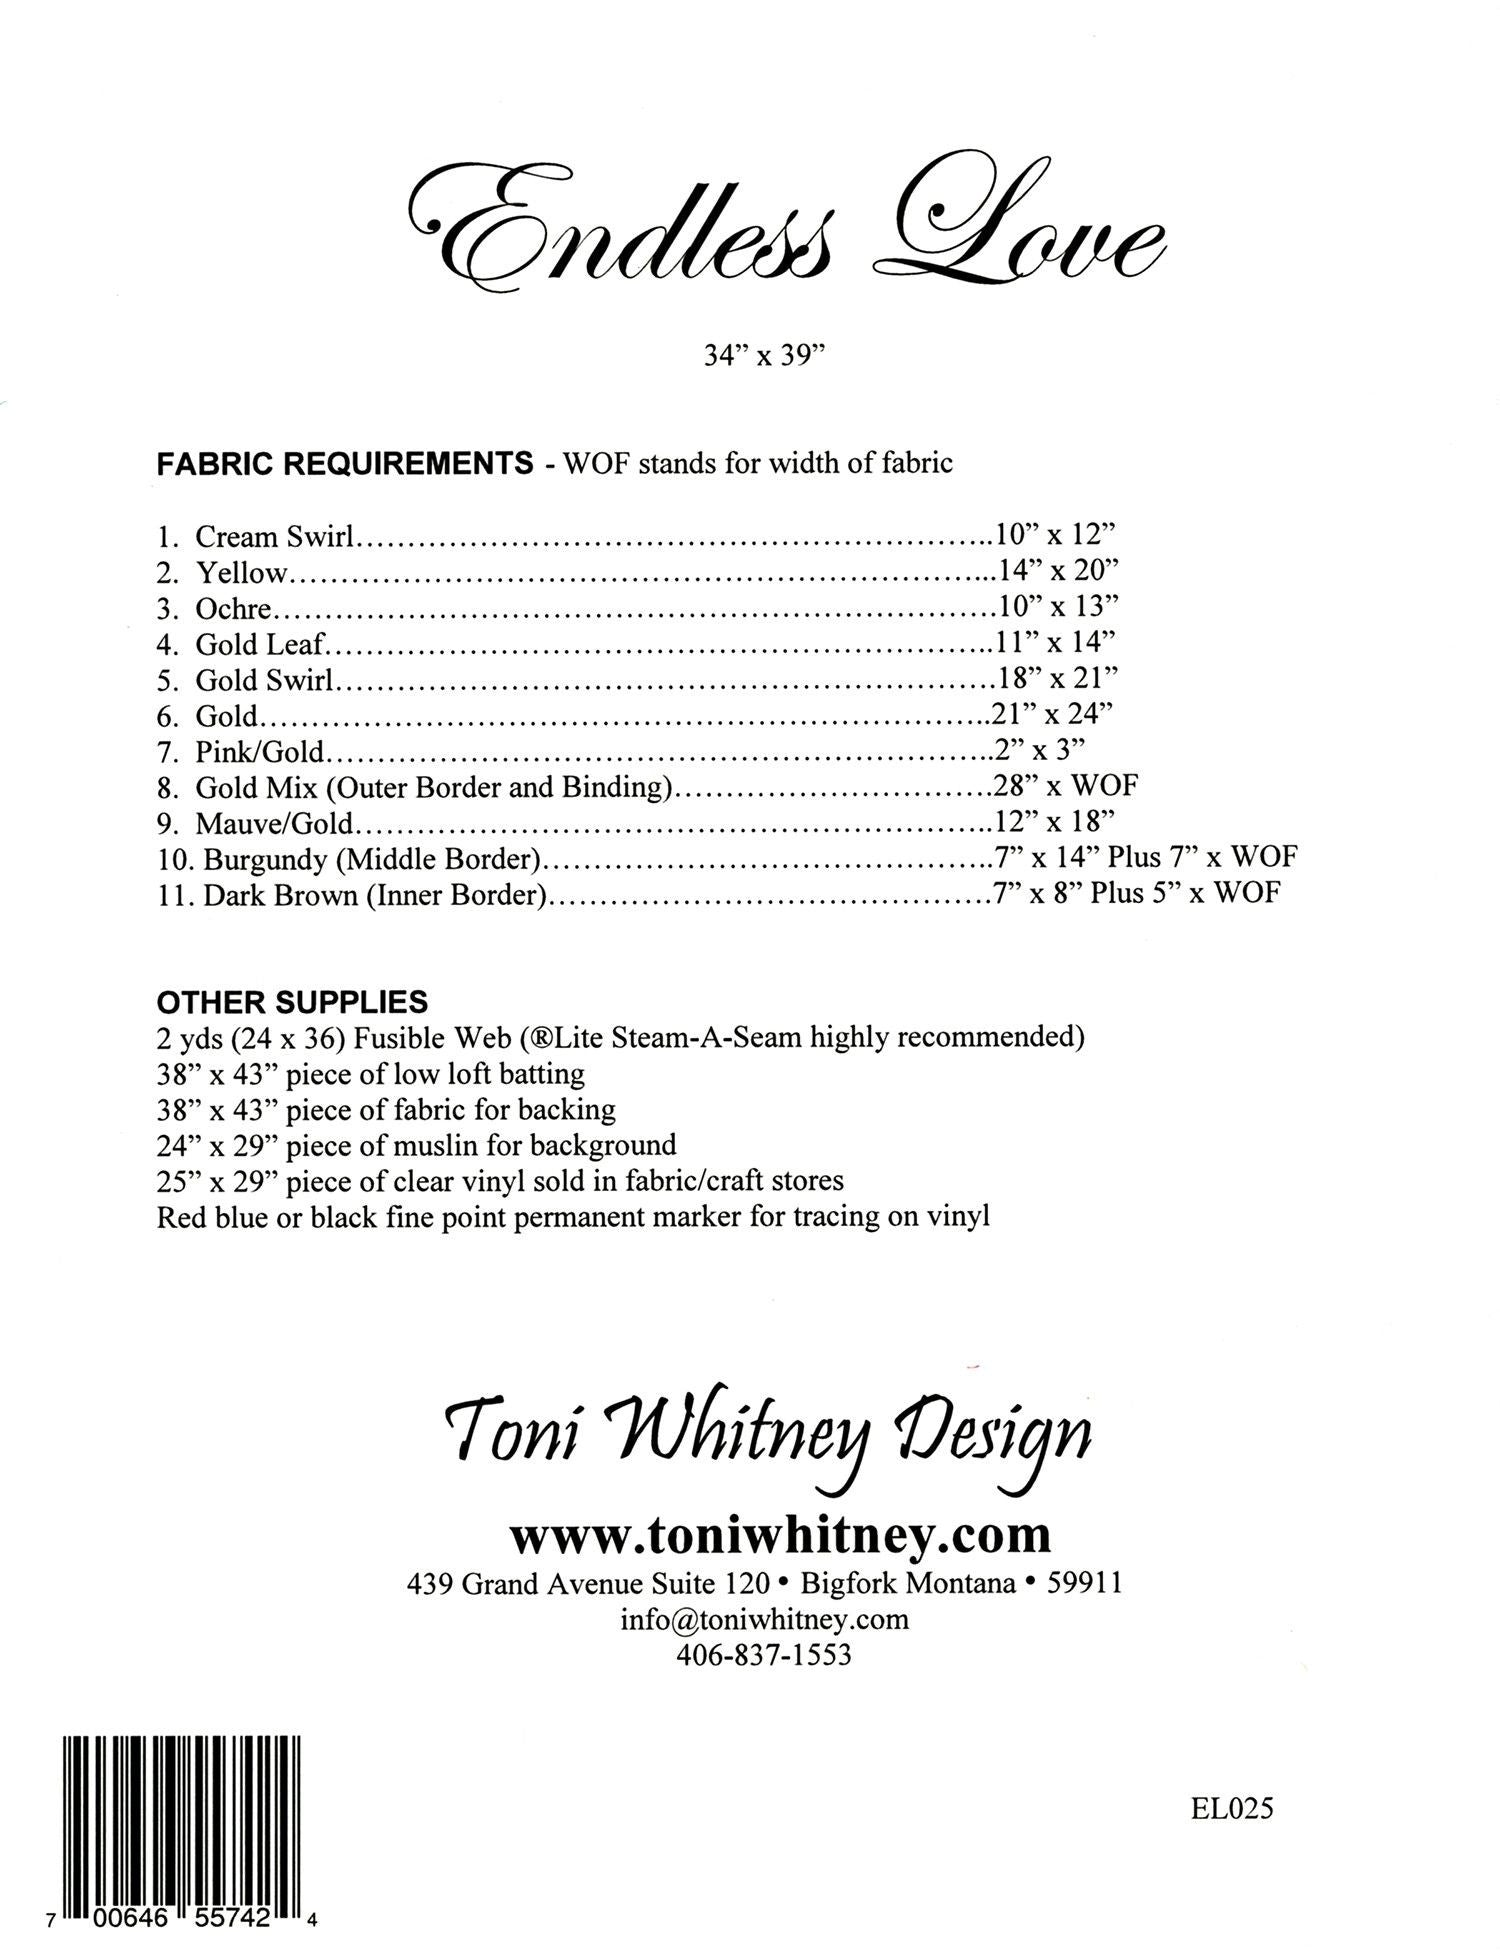 Toni Whitney Design Endless Love Applique Quilt Pattern Back Cover